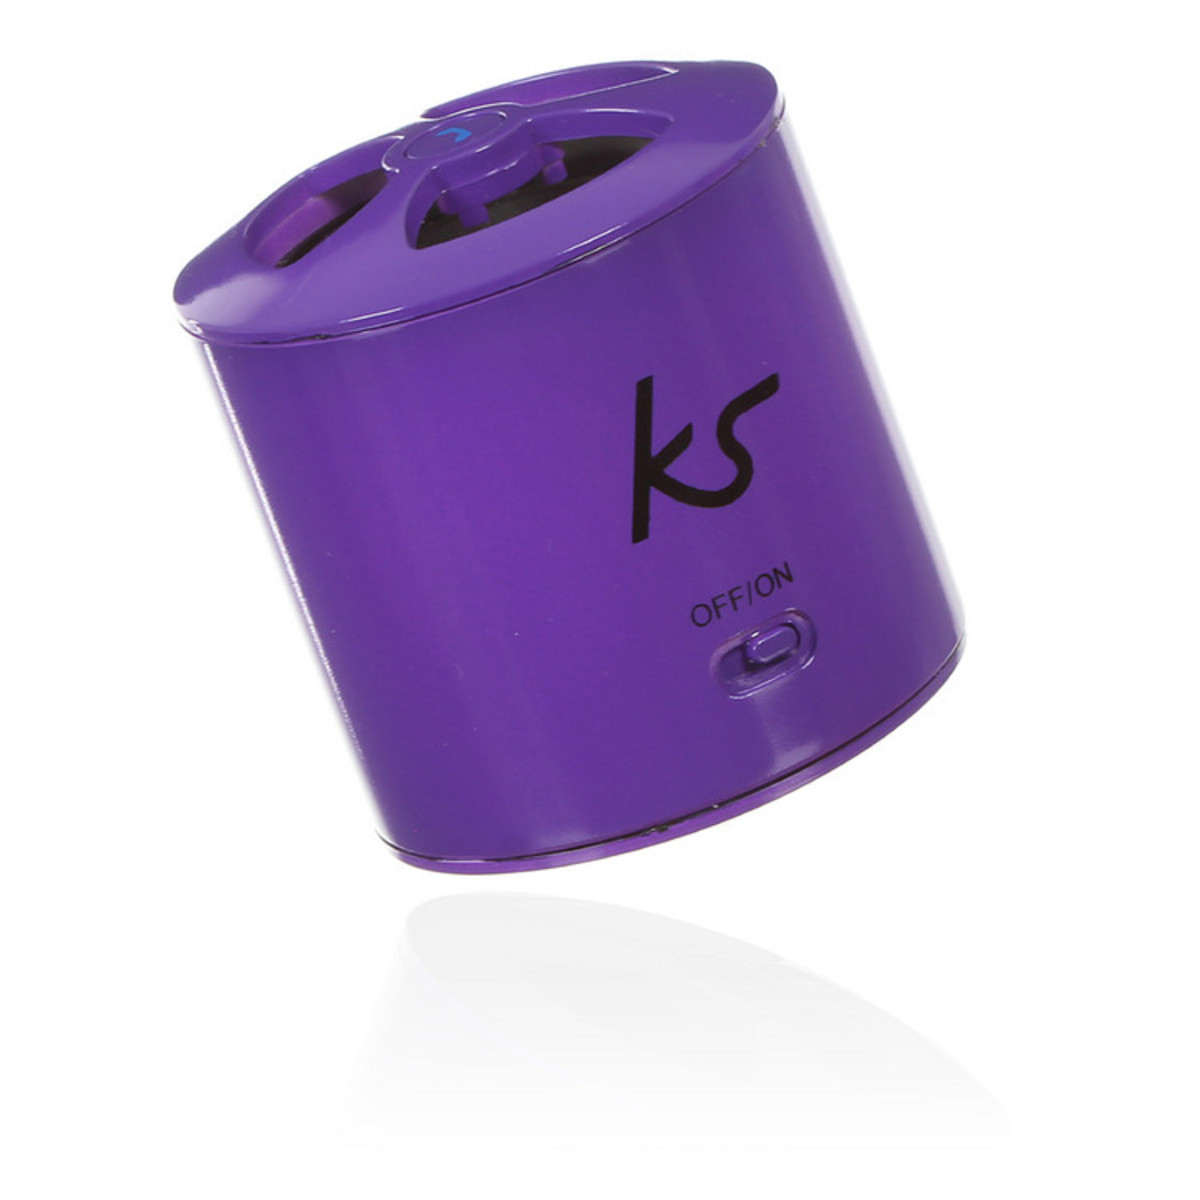 haut parleur kitsound pocketboom portable bluetooth en violet. Black Bedroom Furniture Sets. Home Design Ideas